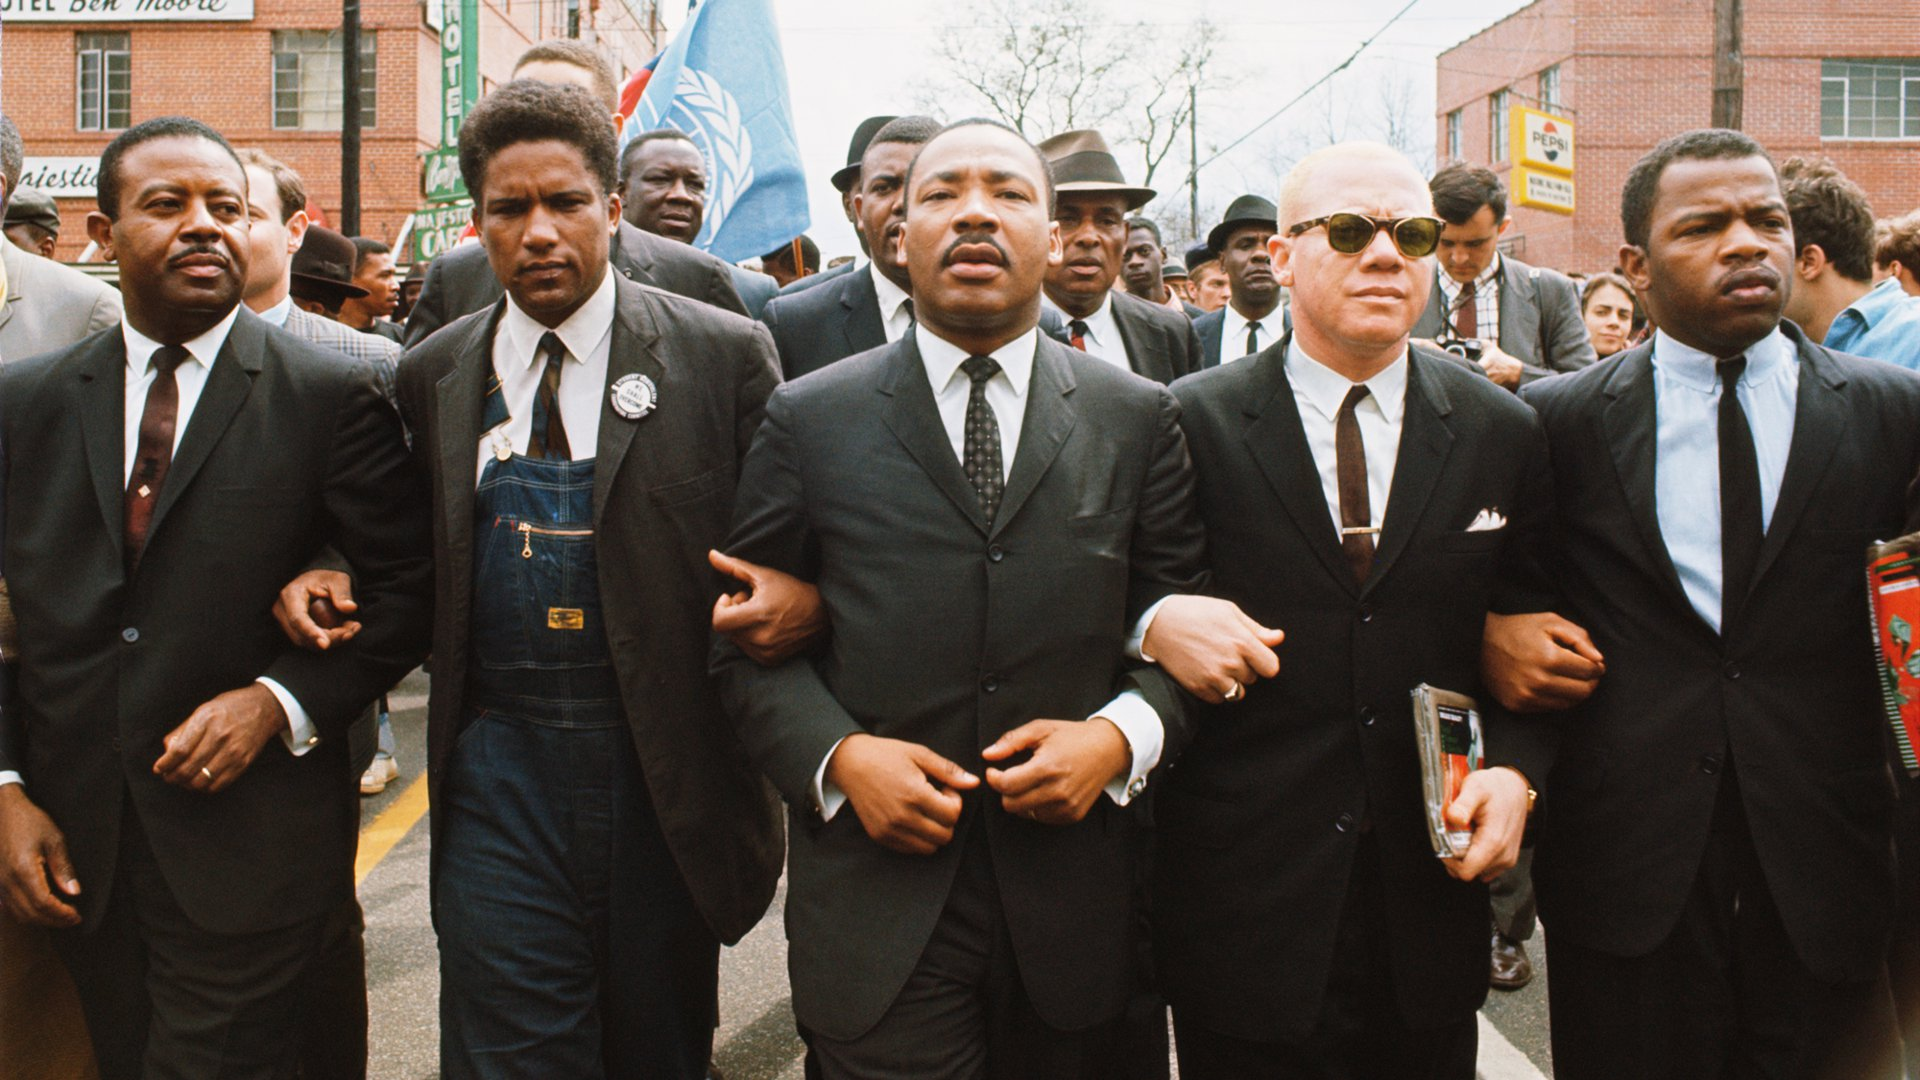 John lewis king inspired me to get in trouble the atlantic from left ralph abernathy james forman martin luther king jr jesse douglas and john lewis king leads the five day 54 mile march for voting rights gumiabroncs Image collections